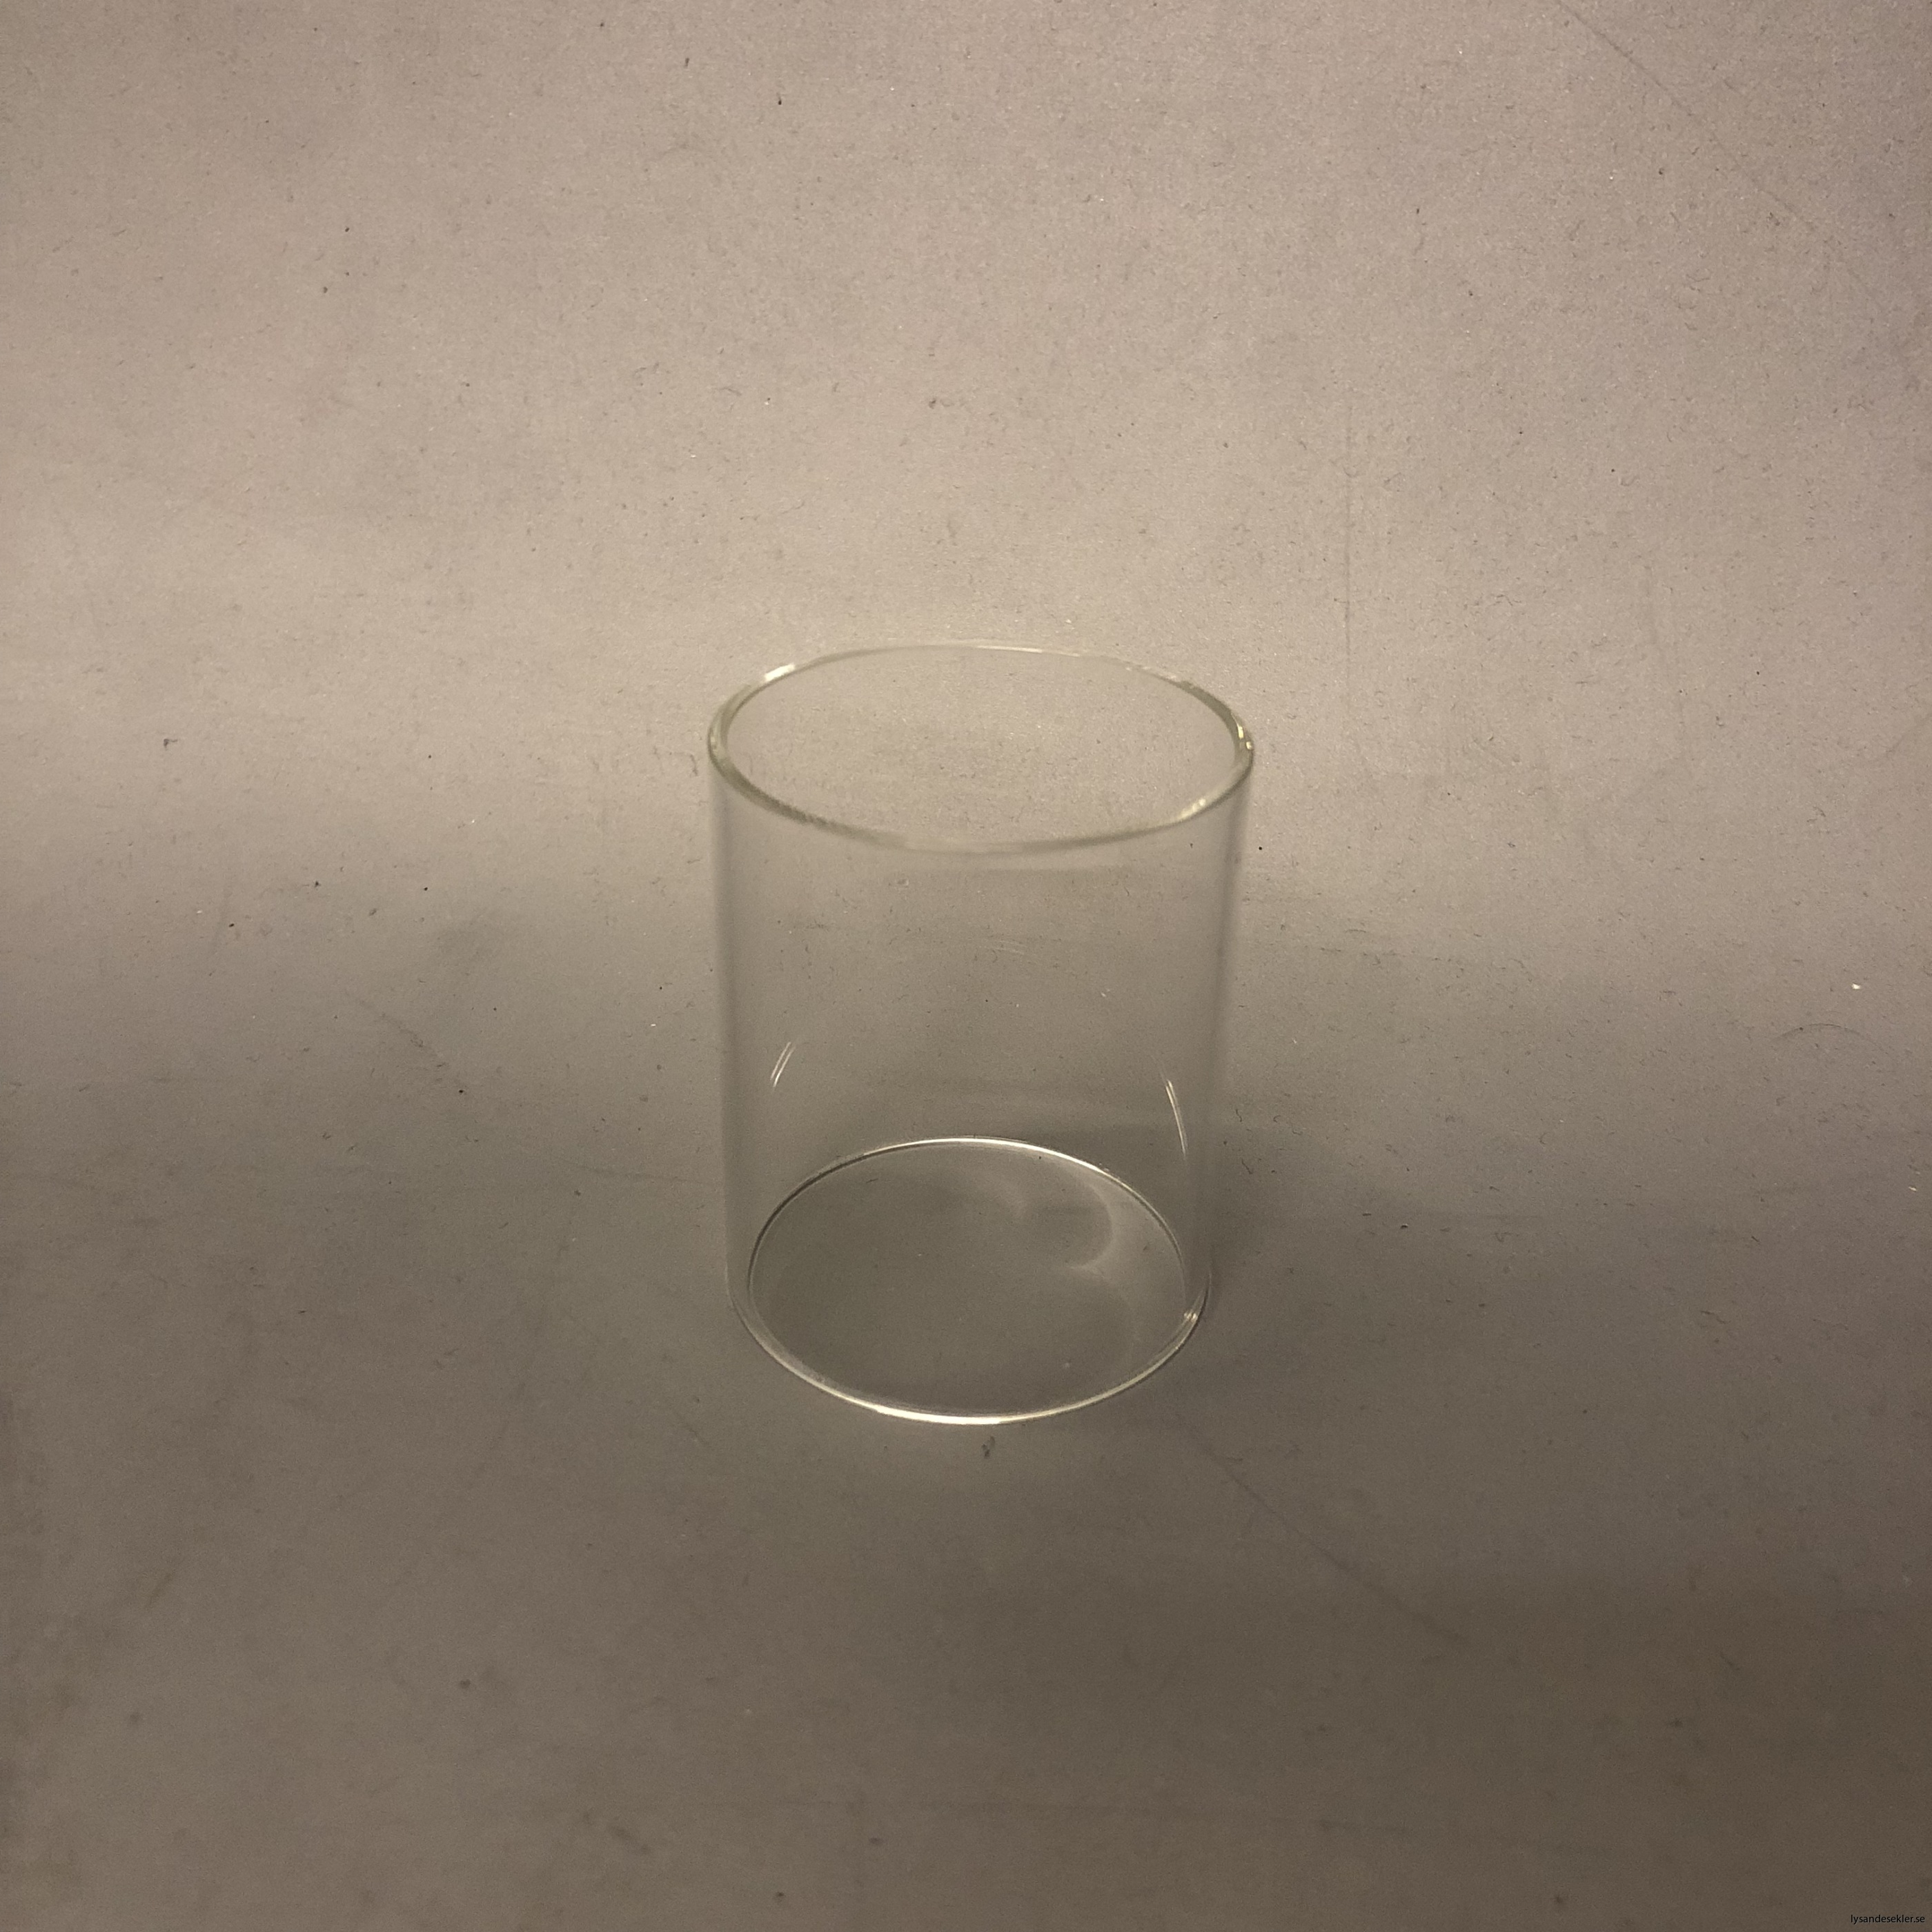 cylinderglas 55 mm 46 mm i diameter2